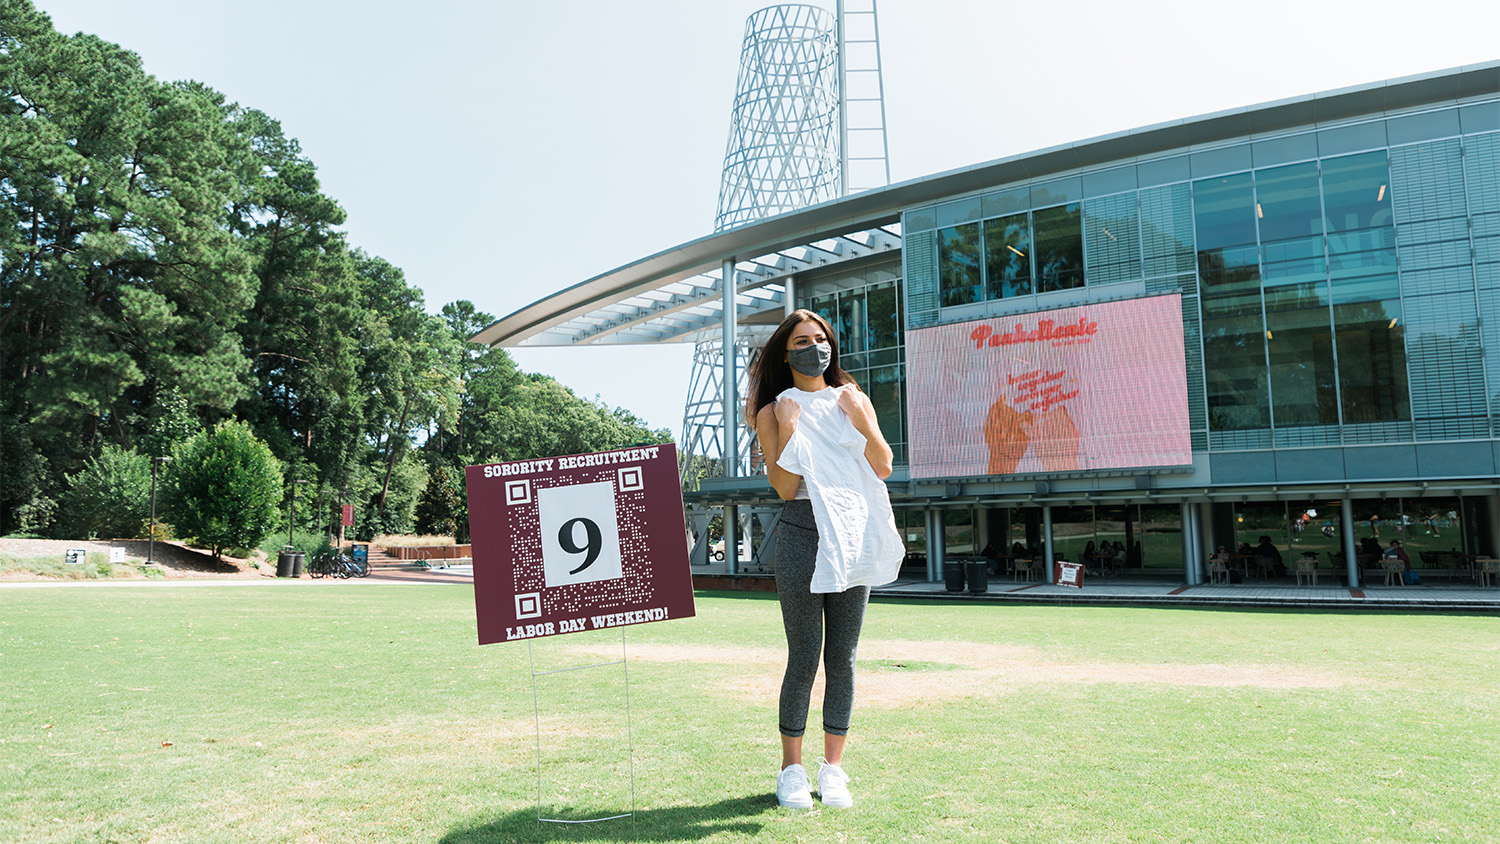 A new member of a Panhellenic organization holds up her T-shirt in front of Talley Student Union